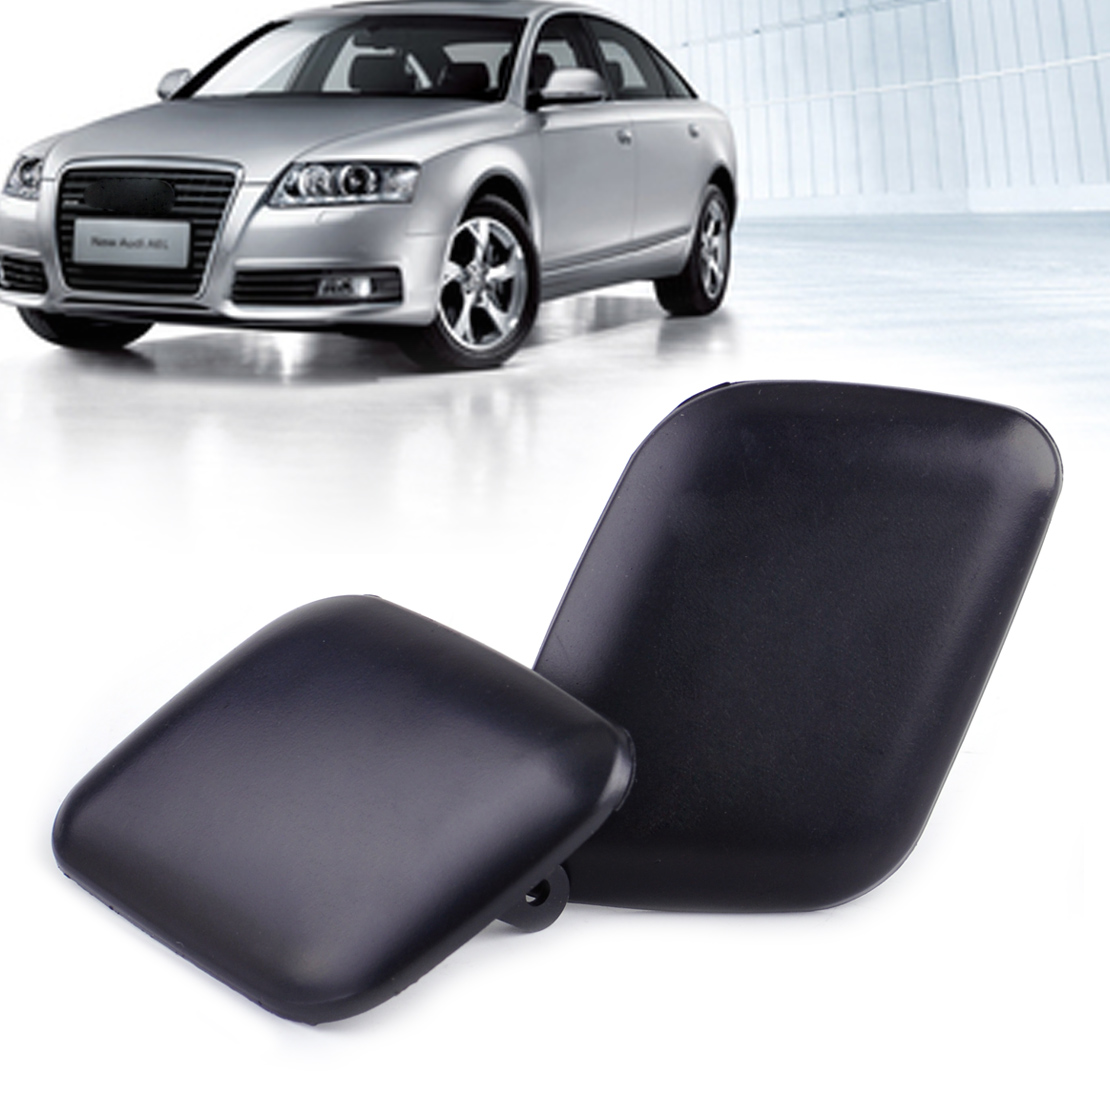 beler 1Pair Front Left & Right Bumper Headlight Washer Cover Cap 4B0 955 275 4B0 955 276 for Audi A6 C5 1998 1999 2000 2001 2002